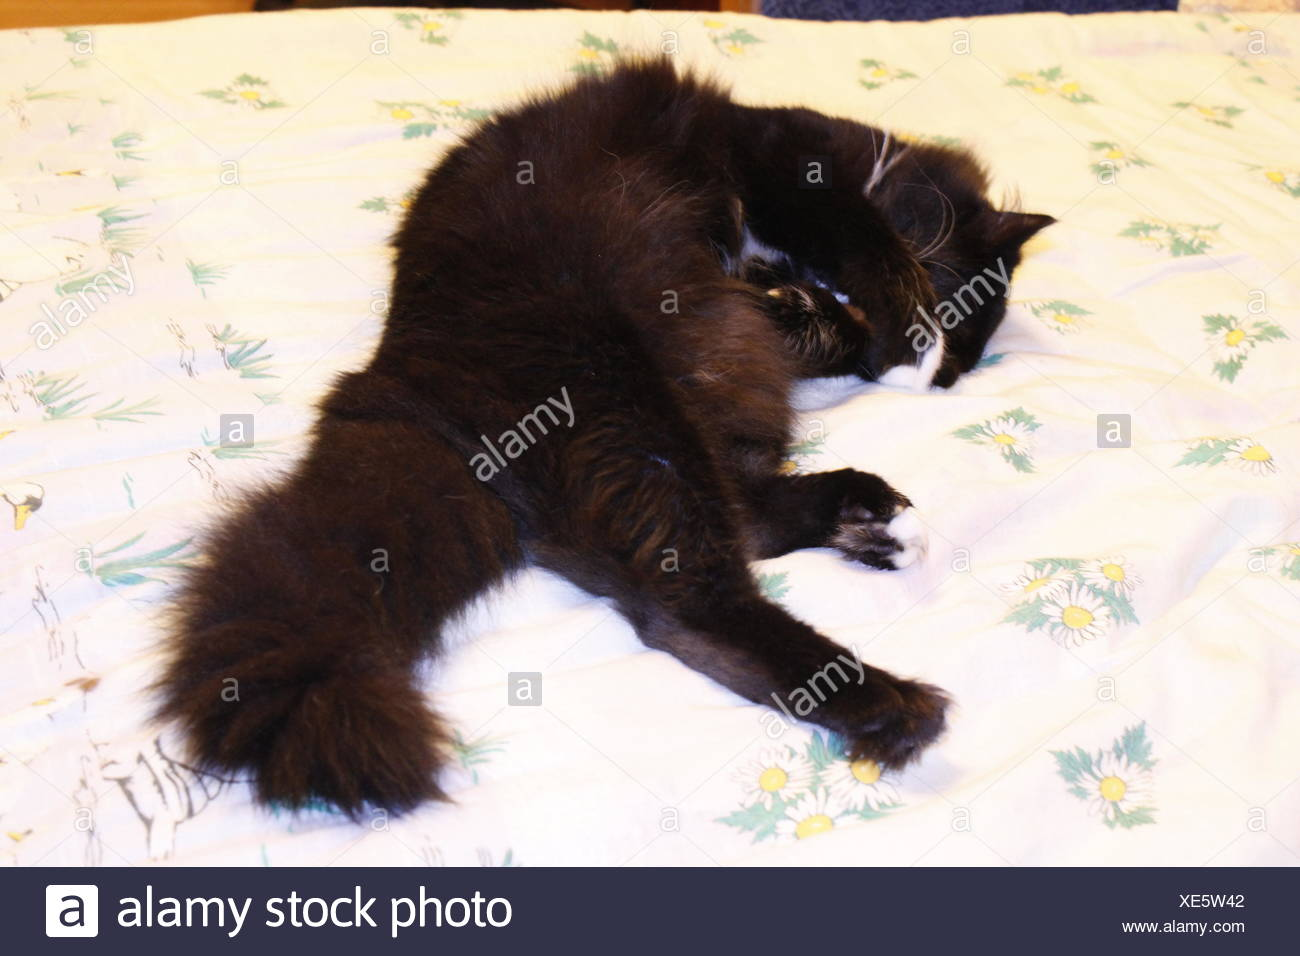 black cat lying prone on the white bed - Stock Image